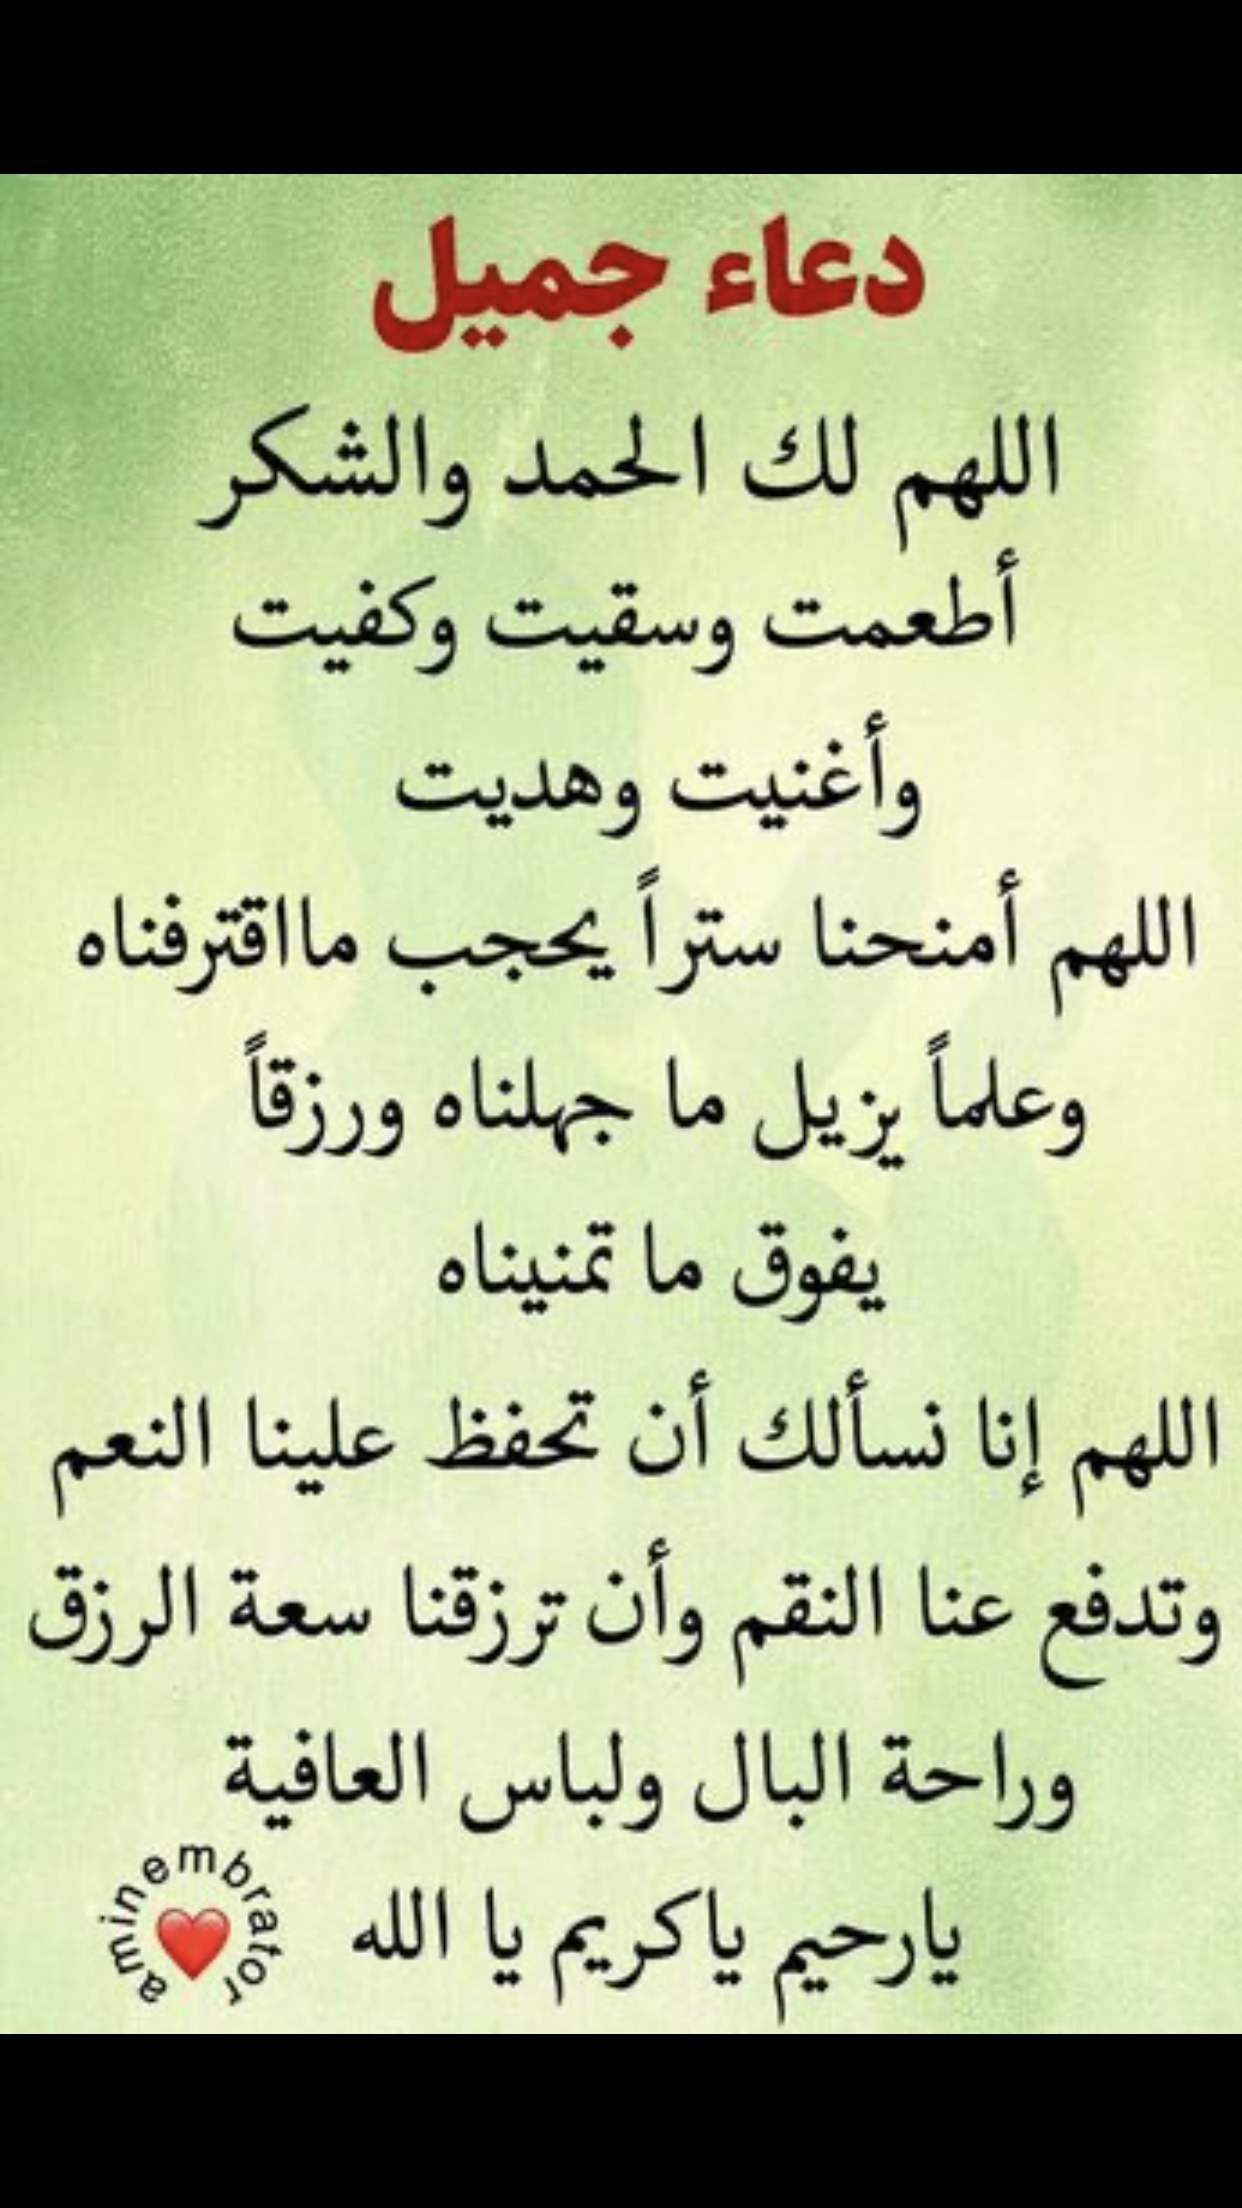 Pin By Dalia Omar On اذكارات Islamic Love Quotes Islamic Inspirational Quotes Islamic Phrases